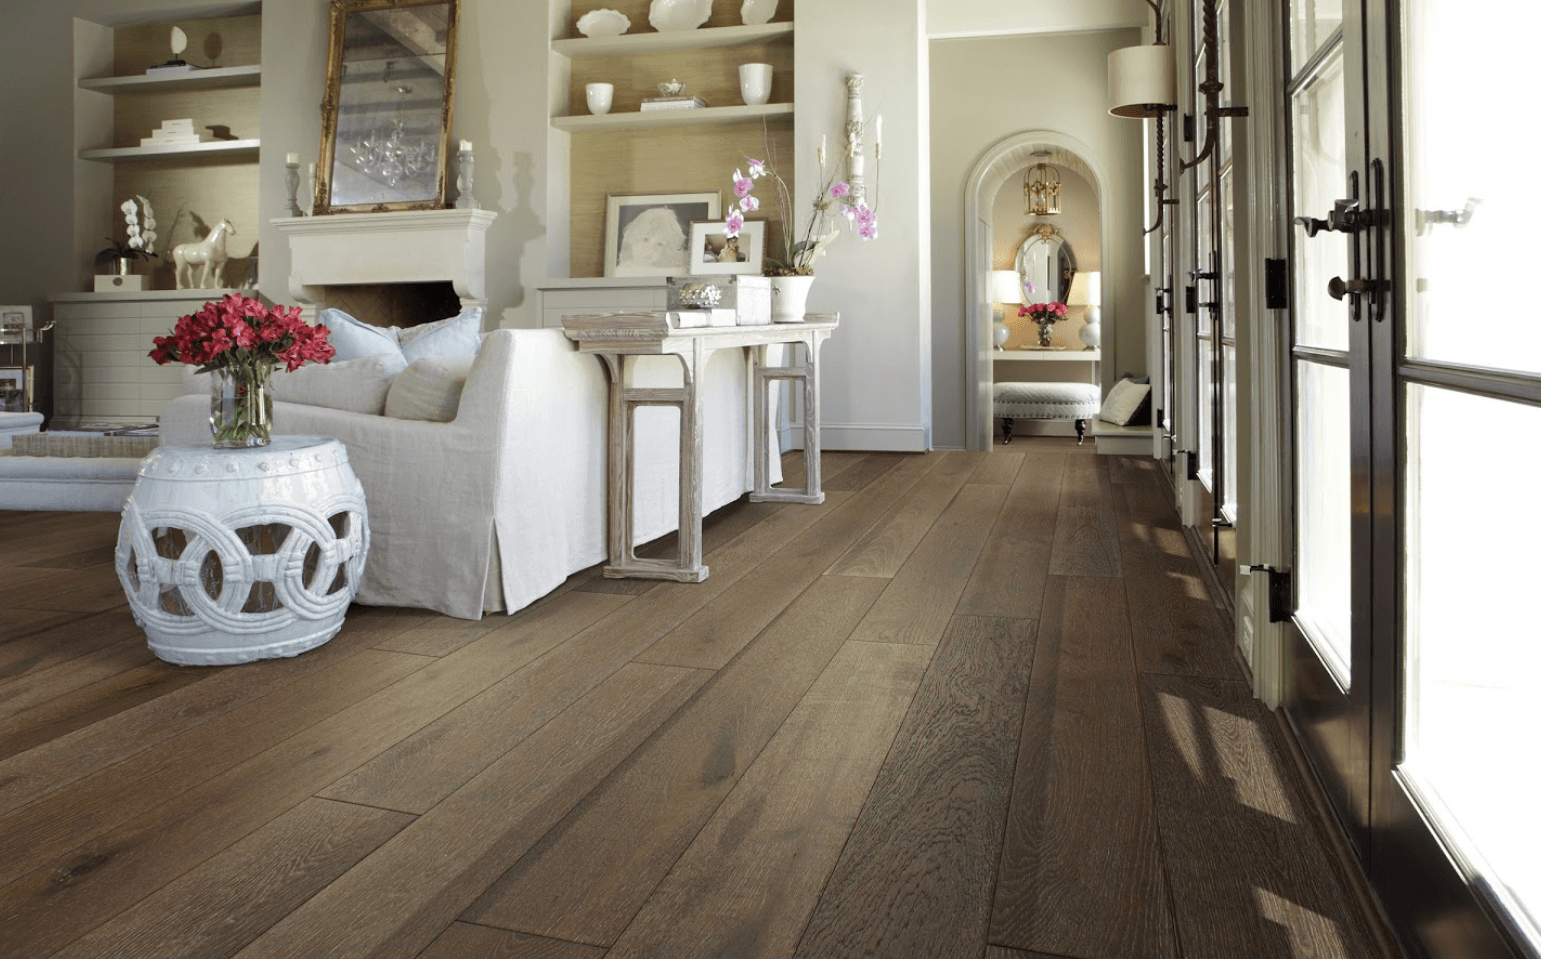 Hardwood | West River Carpets